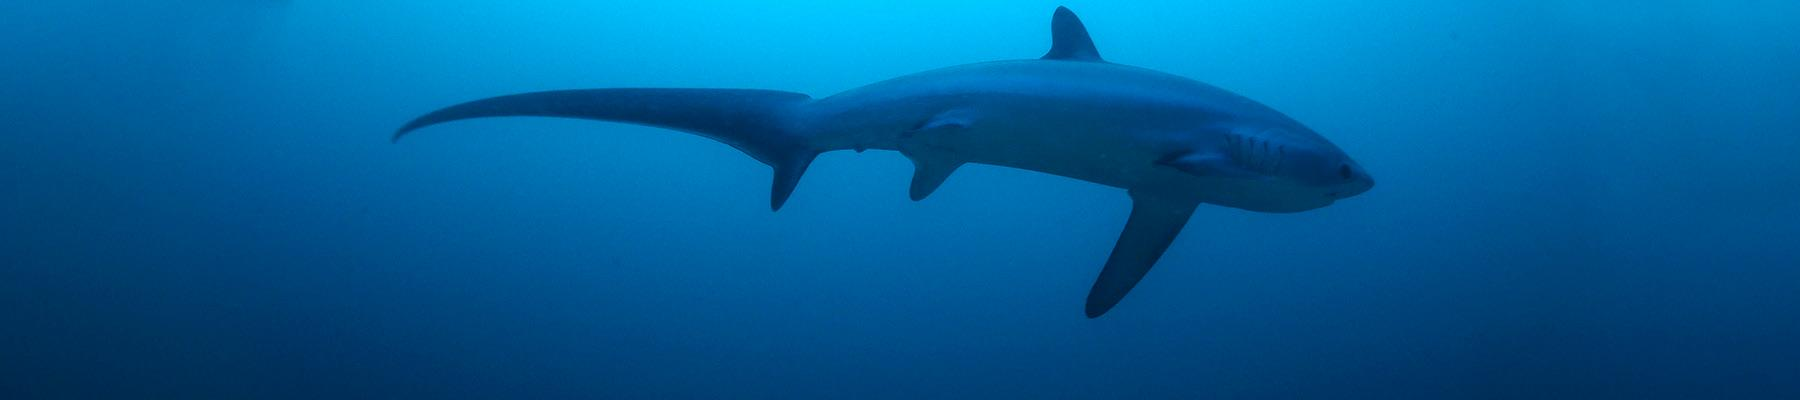 Thresher shark © Klaus Stiefel / Creative Commons 2.0